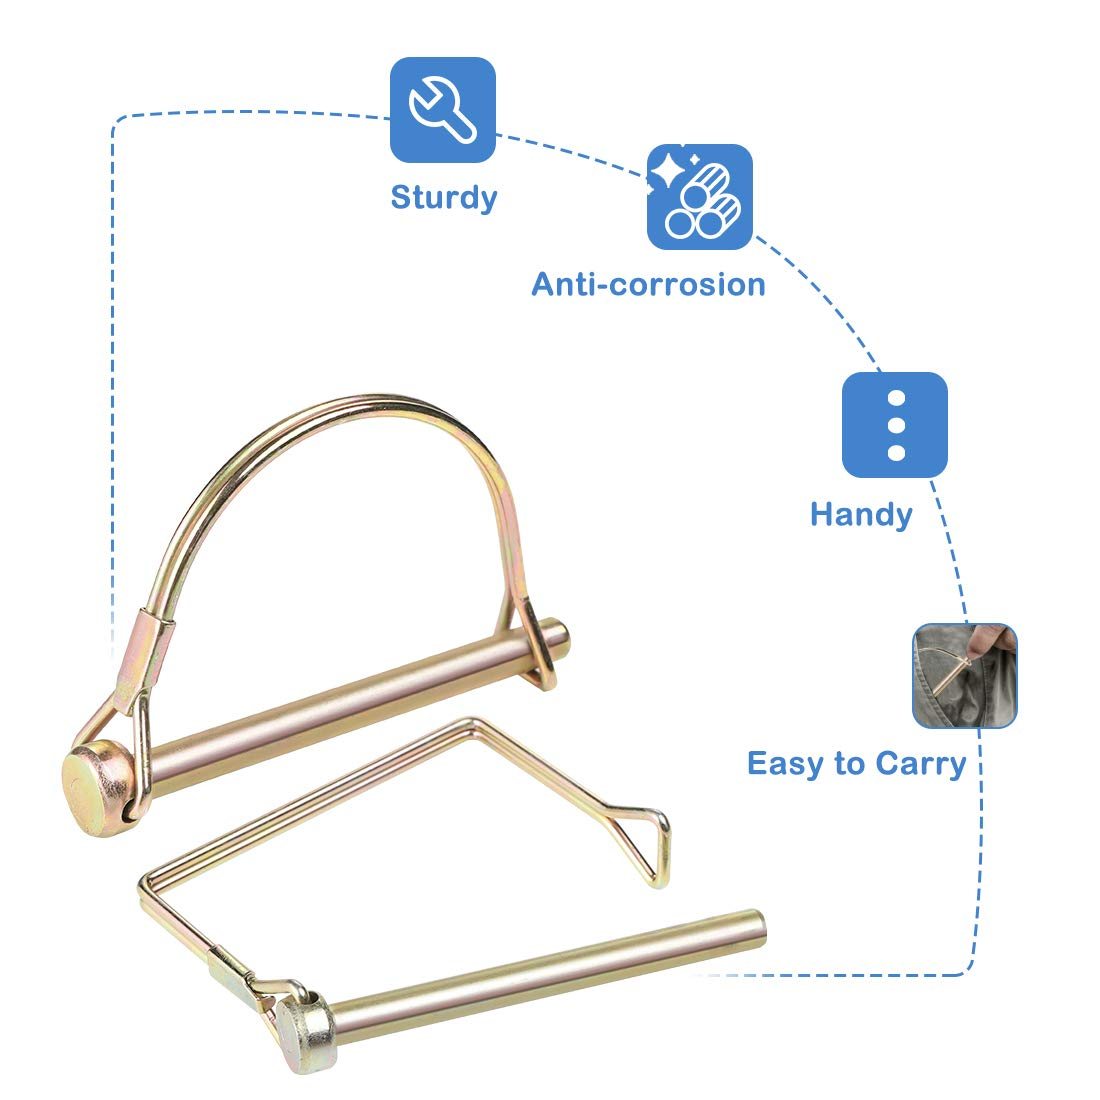 Square And Arch Dia 1//4 Inch Safety Coupler Pin For Farm Lawn Garden Wagons Trailer Hitches Couplers Towing CZC AUTO Shaft Locking Pin 10 Pieces Trailer Coupler Pin Heavy Duty